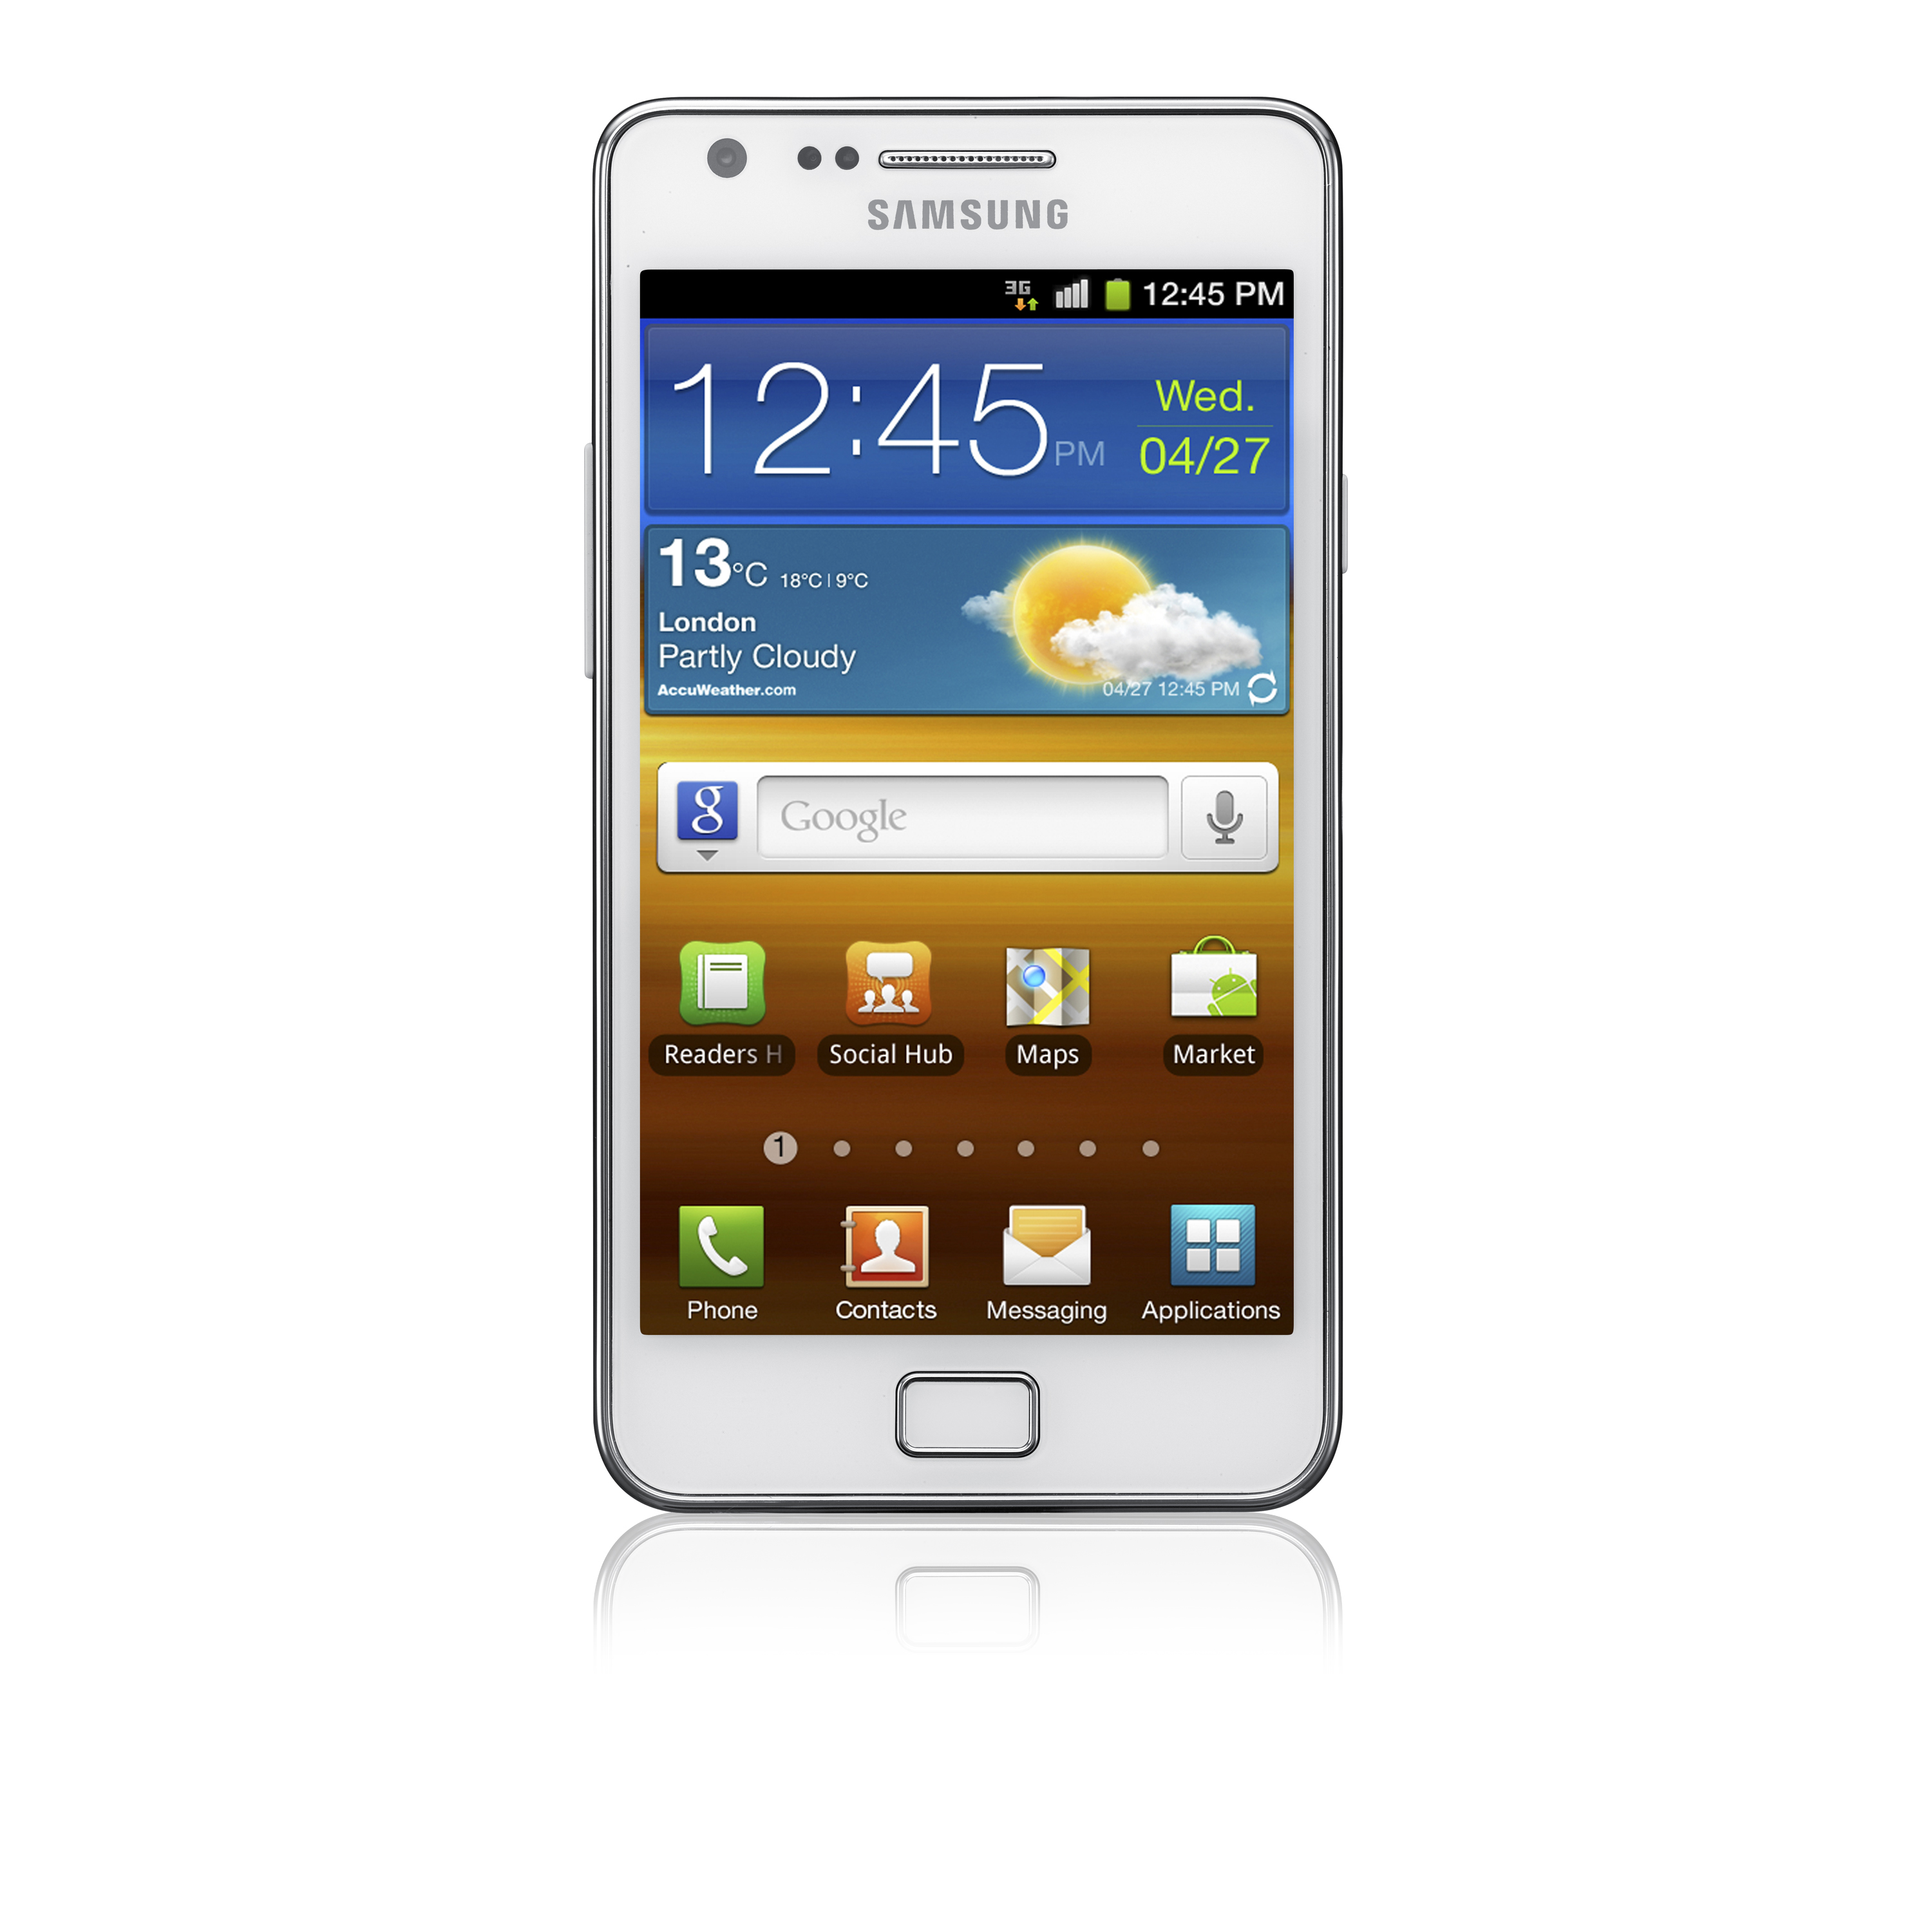 Samsung Galaxy S2 News and Information.